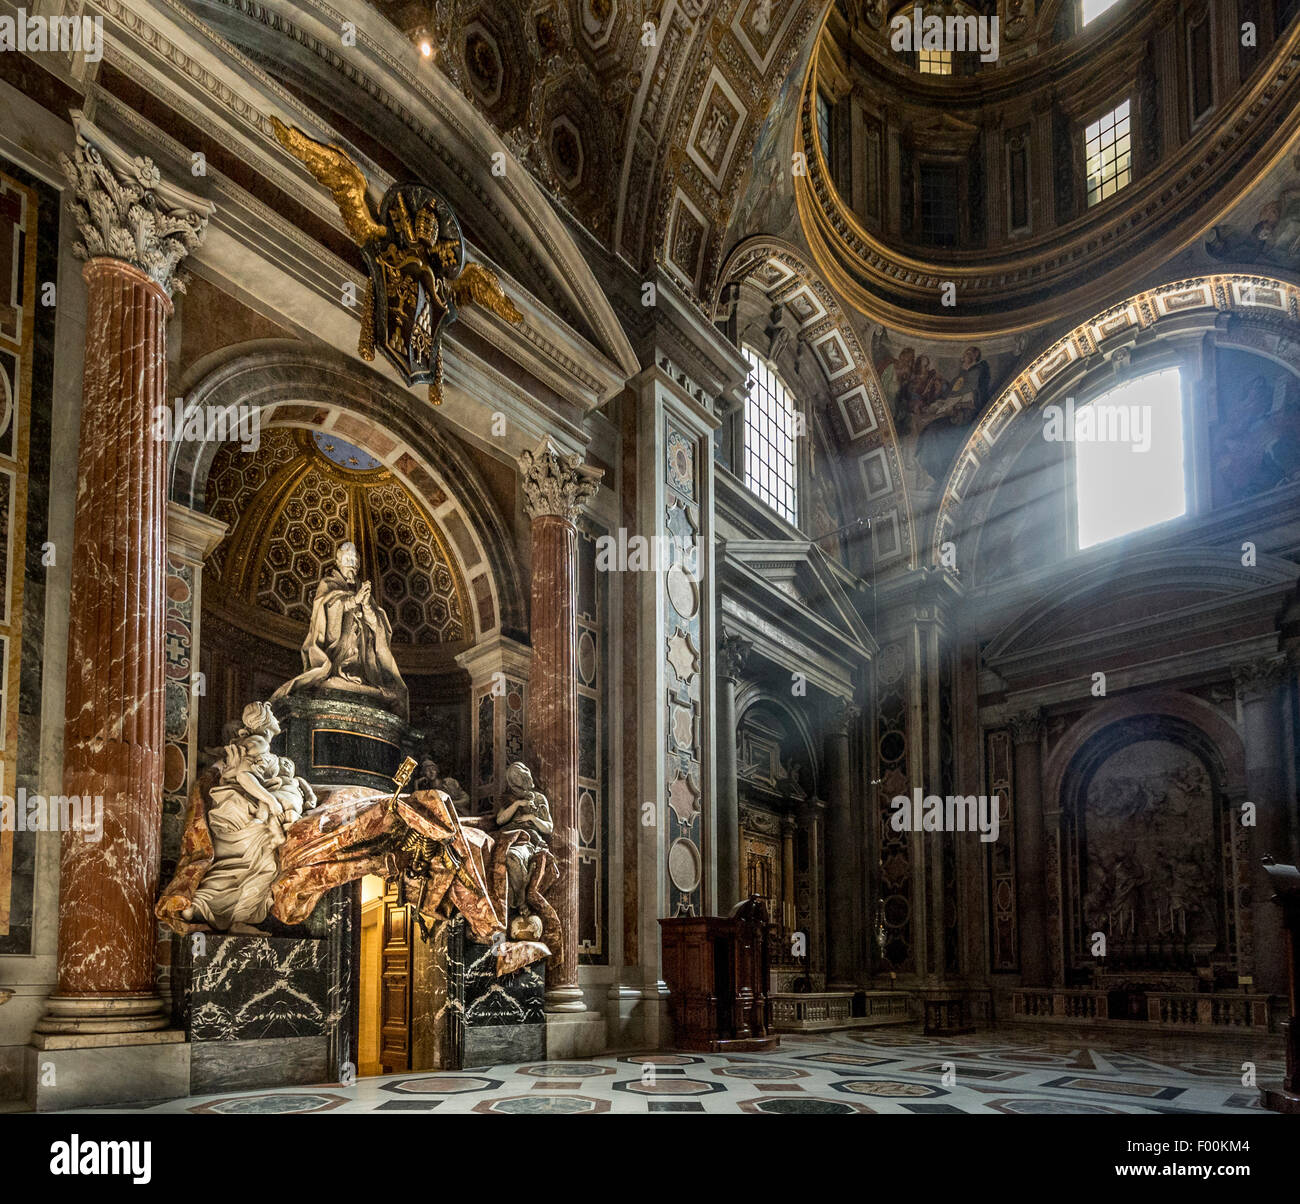 Side view of the tomb of Pope Alexander VII in the south transept of St. Peter's Basilica, Vatican City. Italy - Stock Image